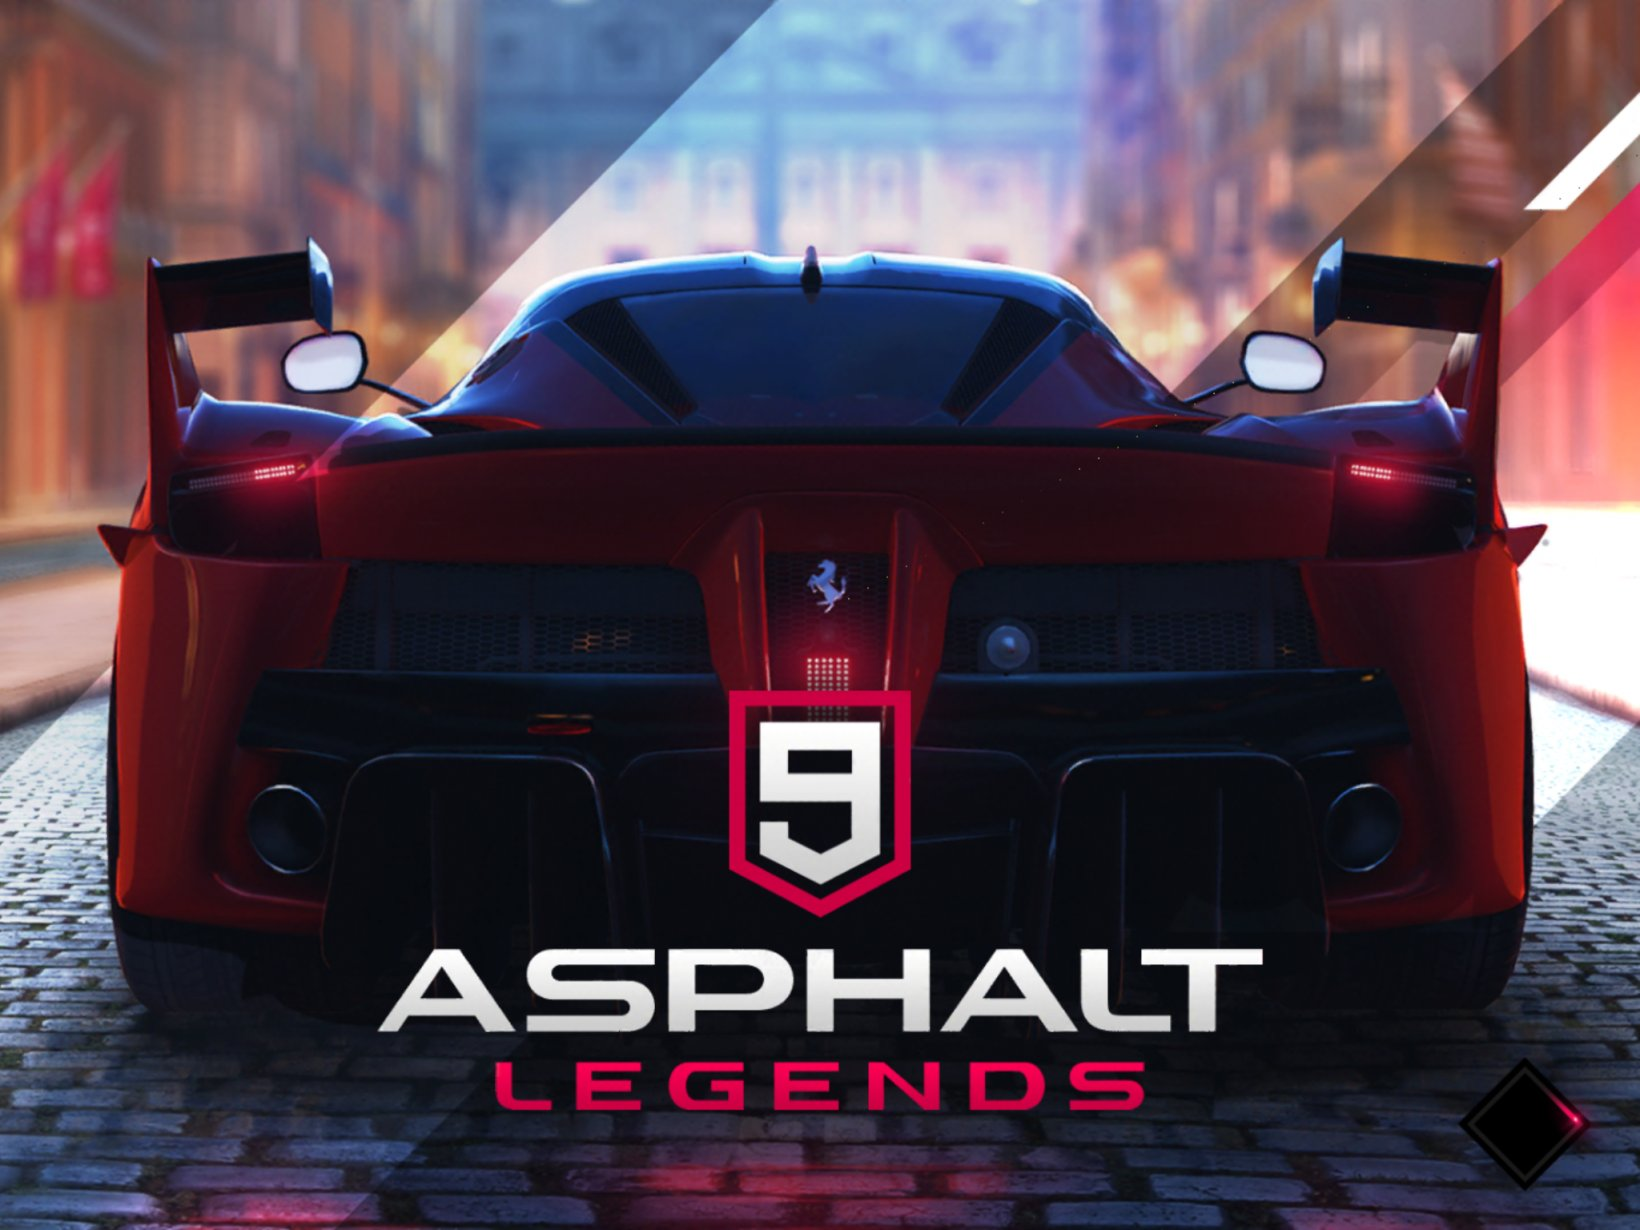 The ultimate guide to Asphalt 9: Legends - Everything you could ever want to know